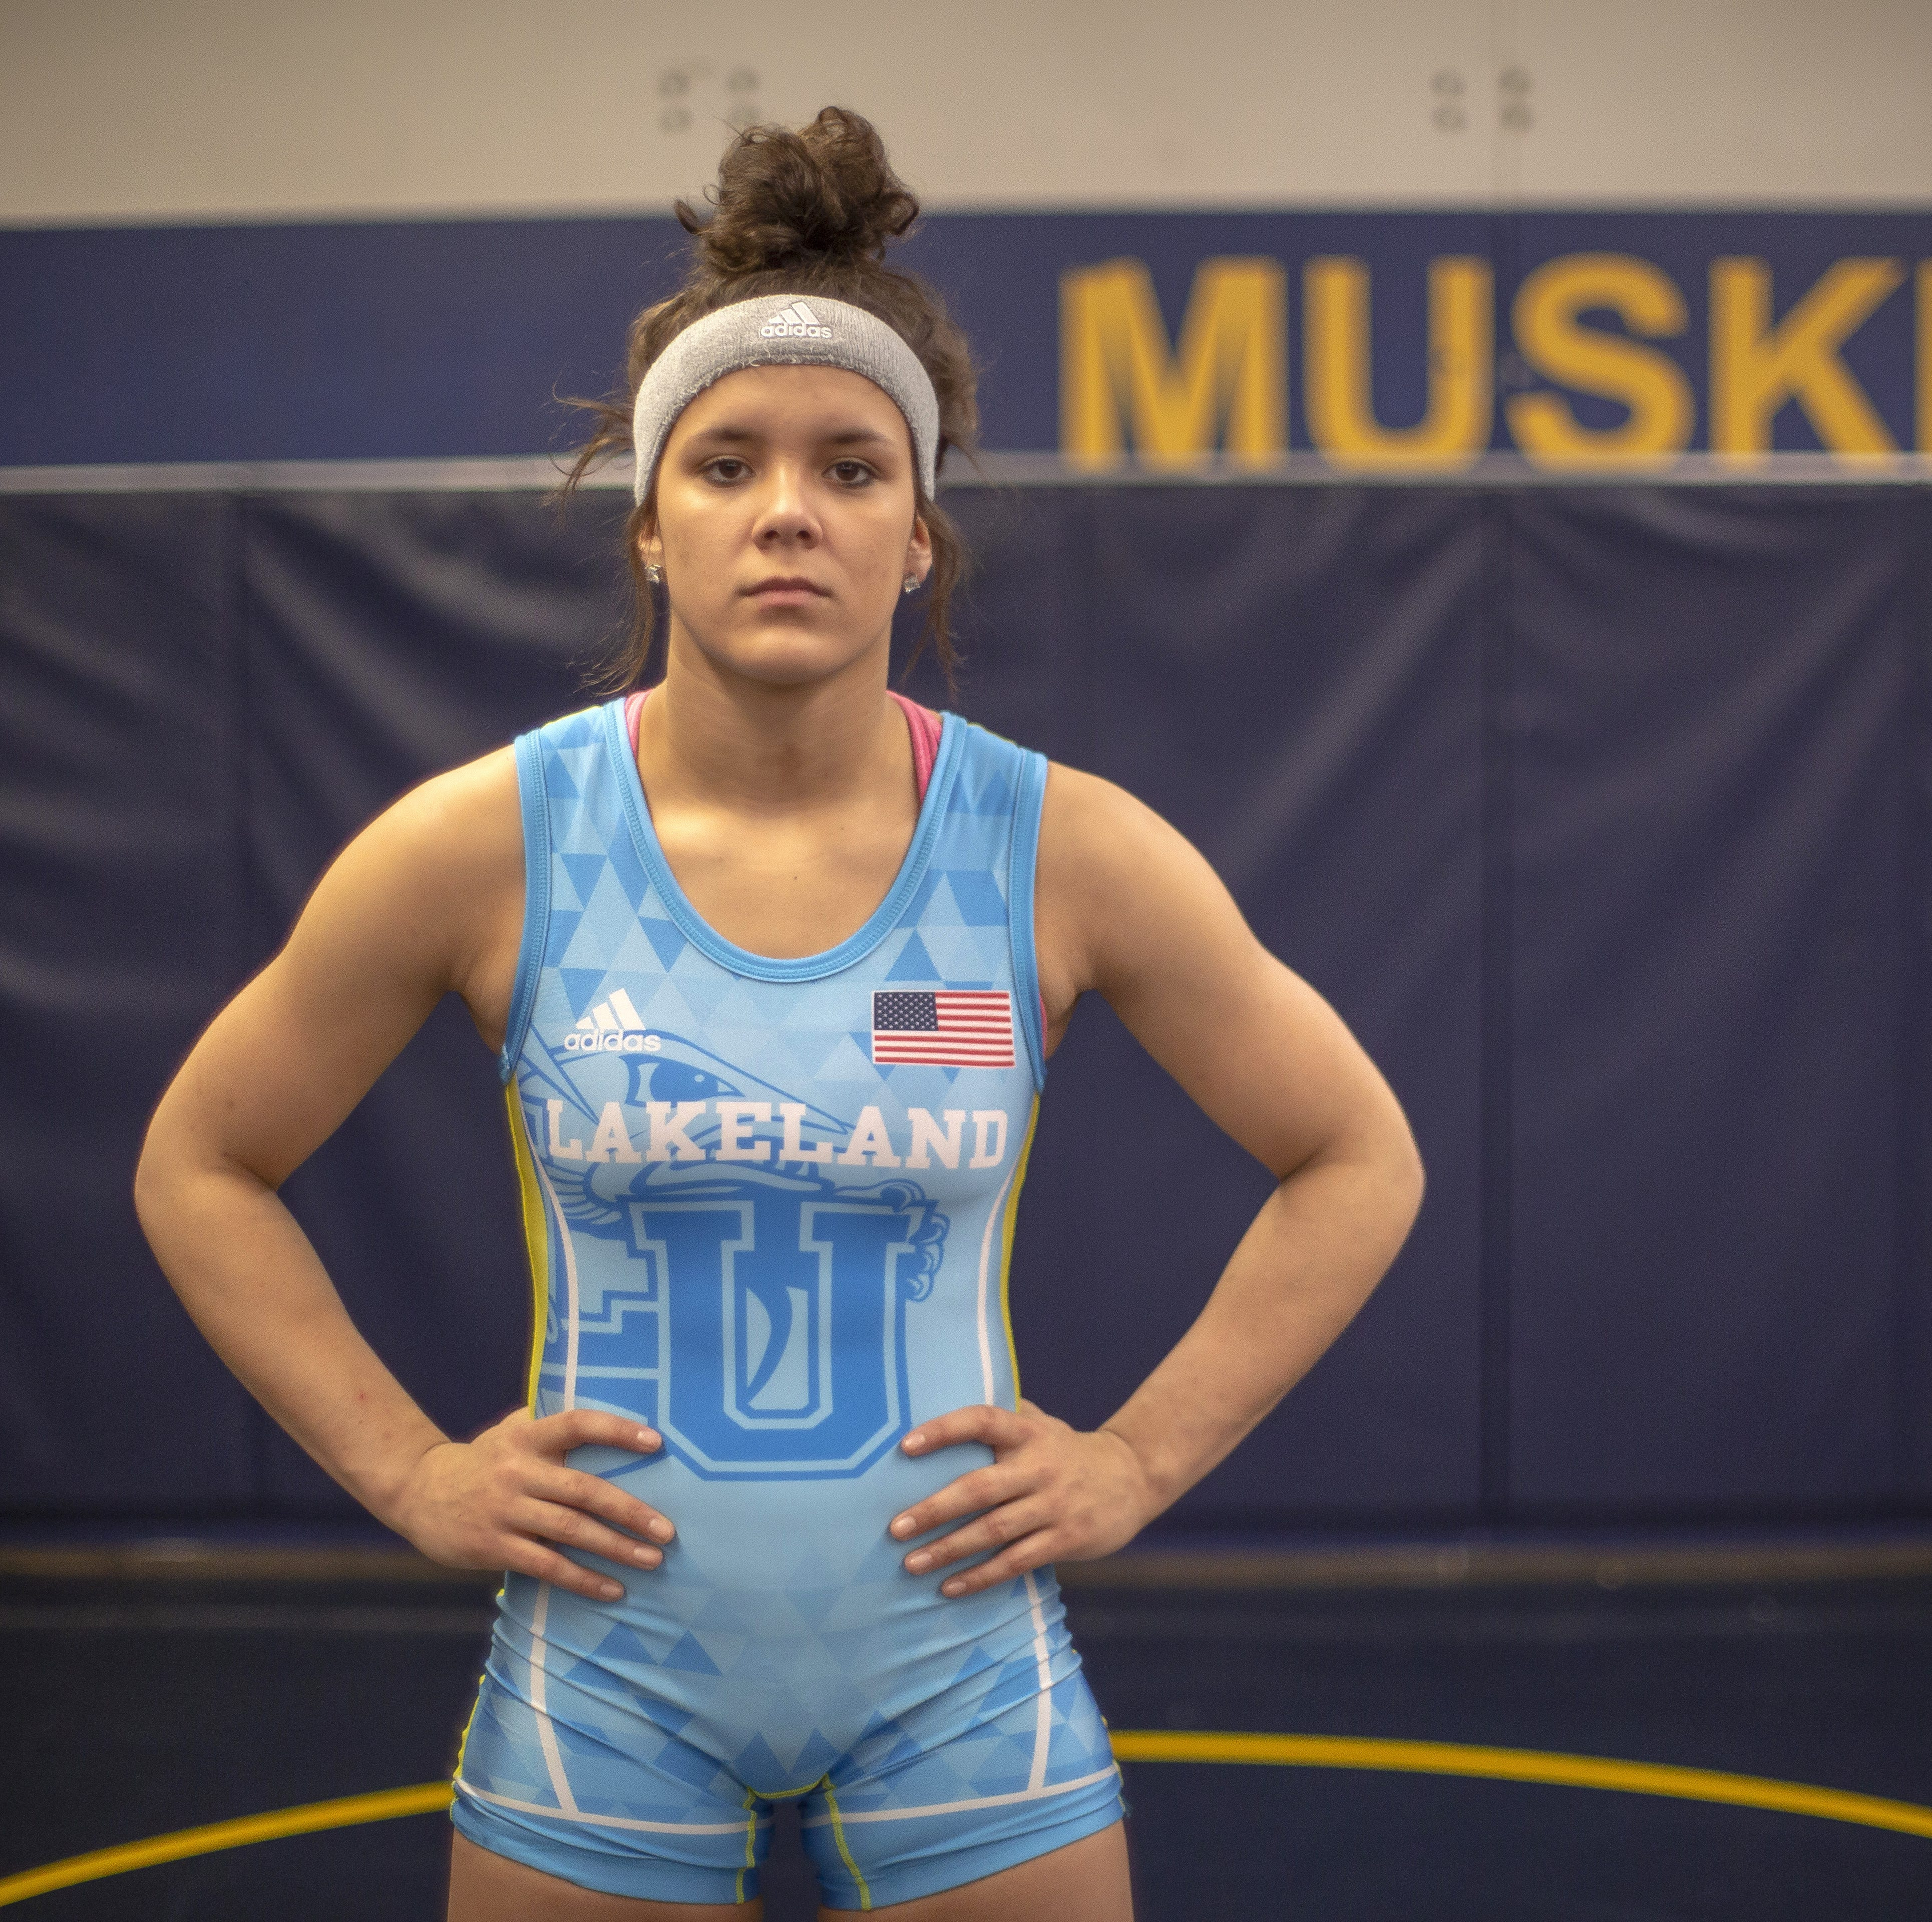 Lakeland's first women's wrestling national champion sets sights on 2020 Olympics